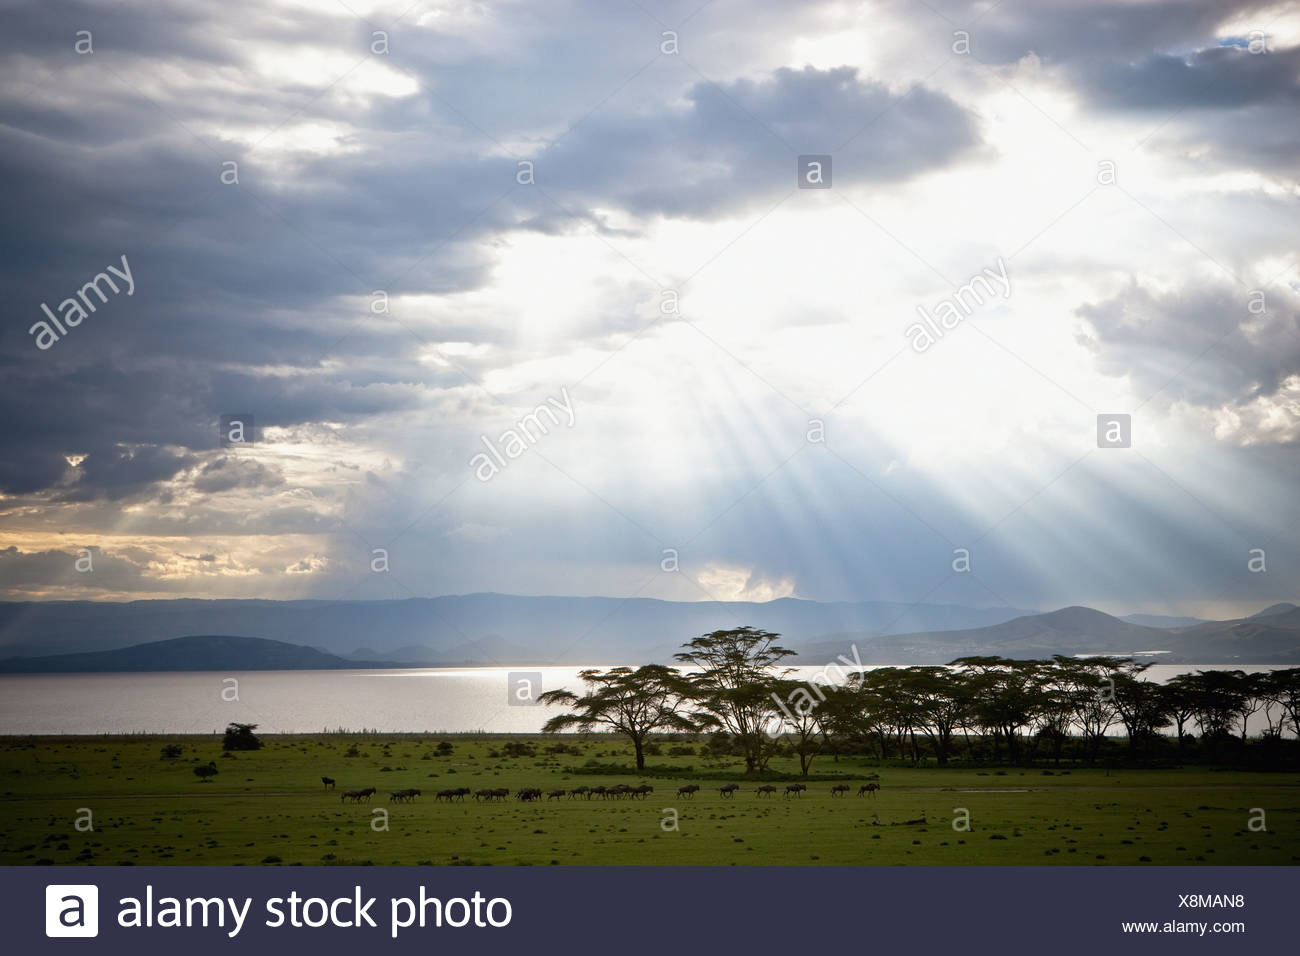 Sunlight Shines Down Through The Clouds Onto A Lake; Kenya - Stock Image